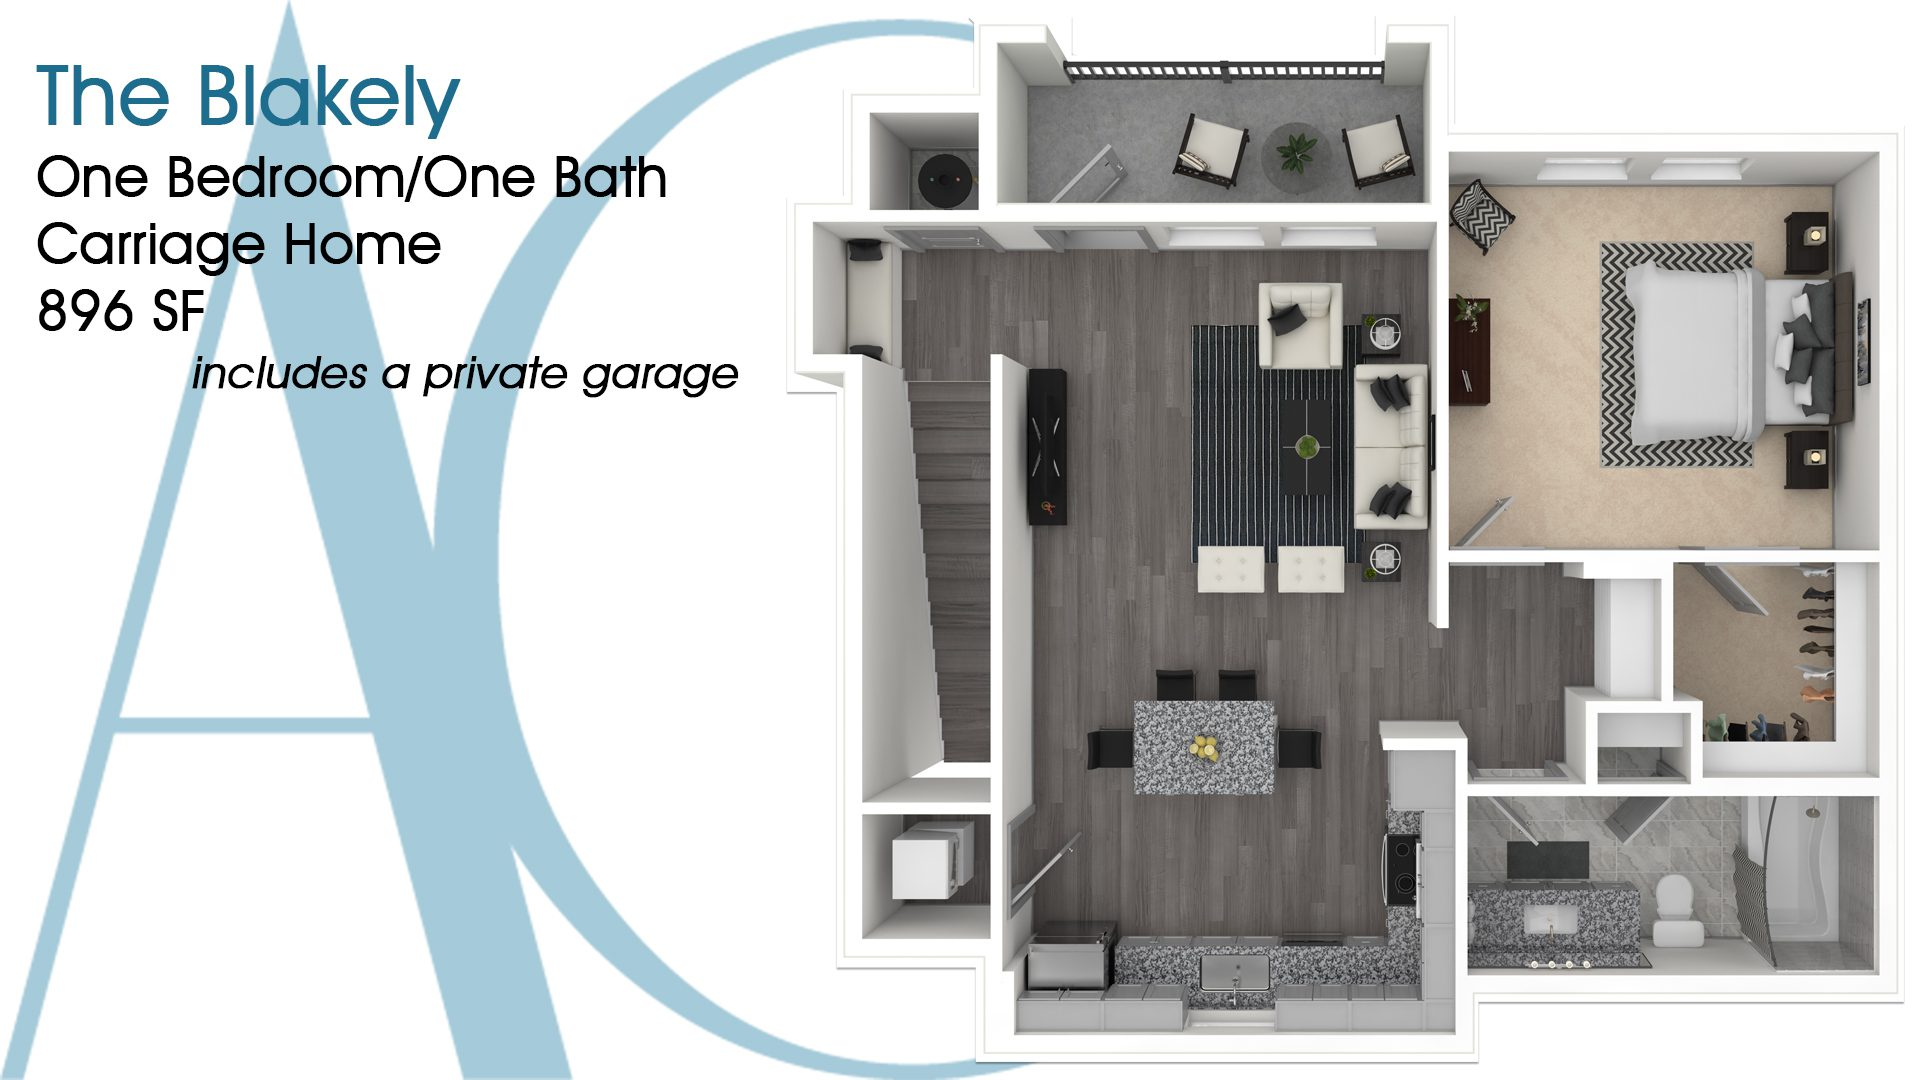 The Blakely—One-Bedroom/One-Bath Carriage Home—896 SQ. FT.